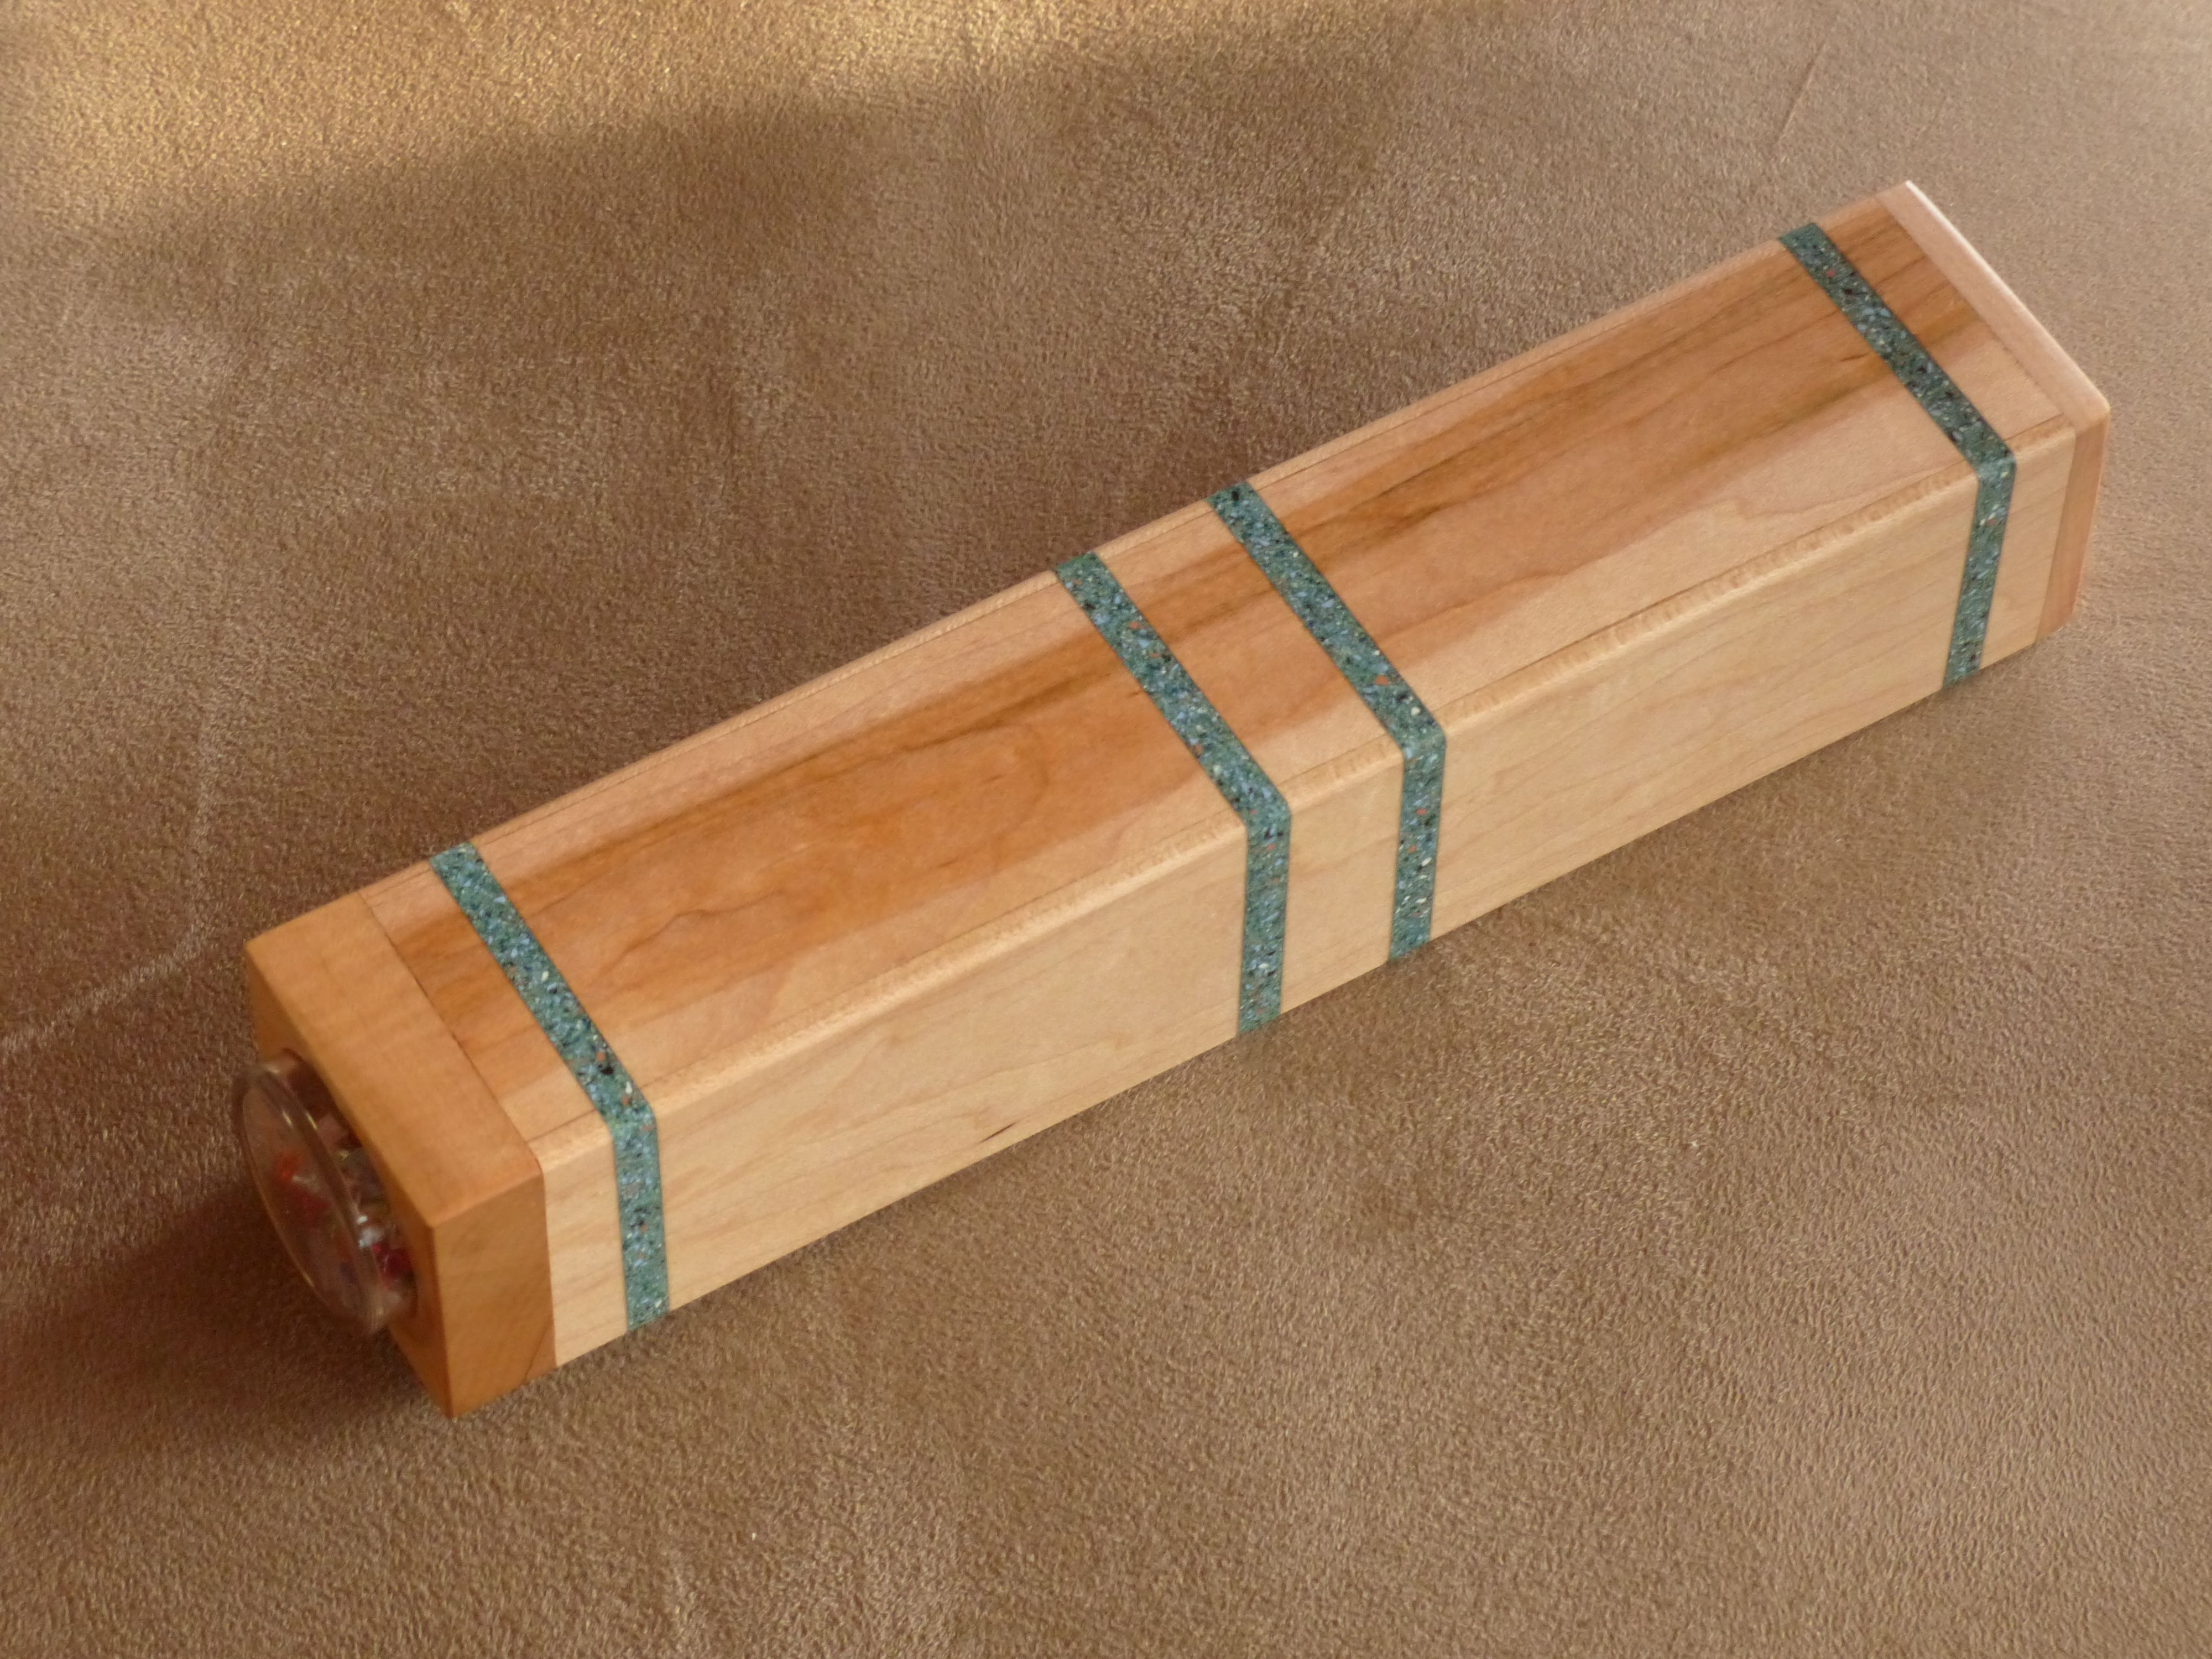 Kaleidoscope from red oak with turquoise made by Dennis Erhart